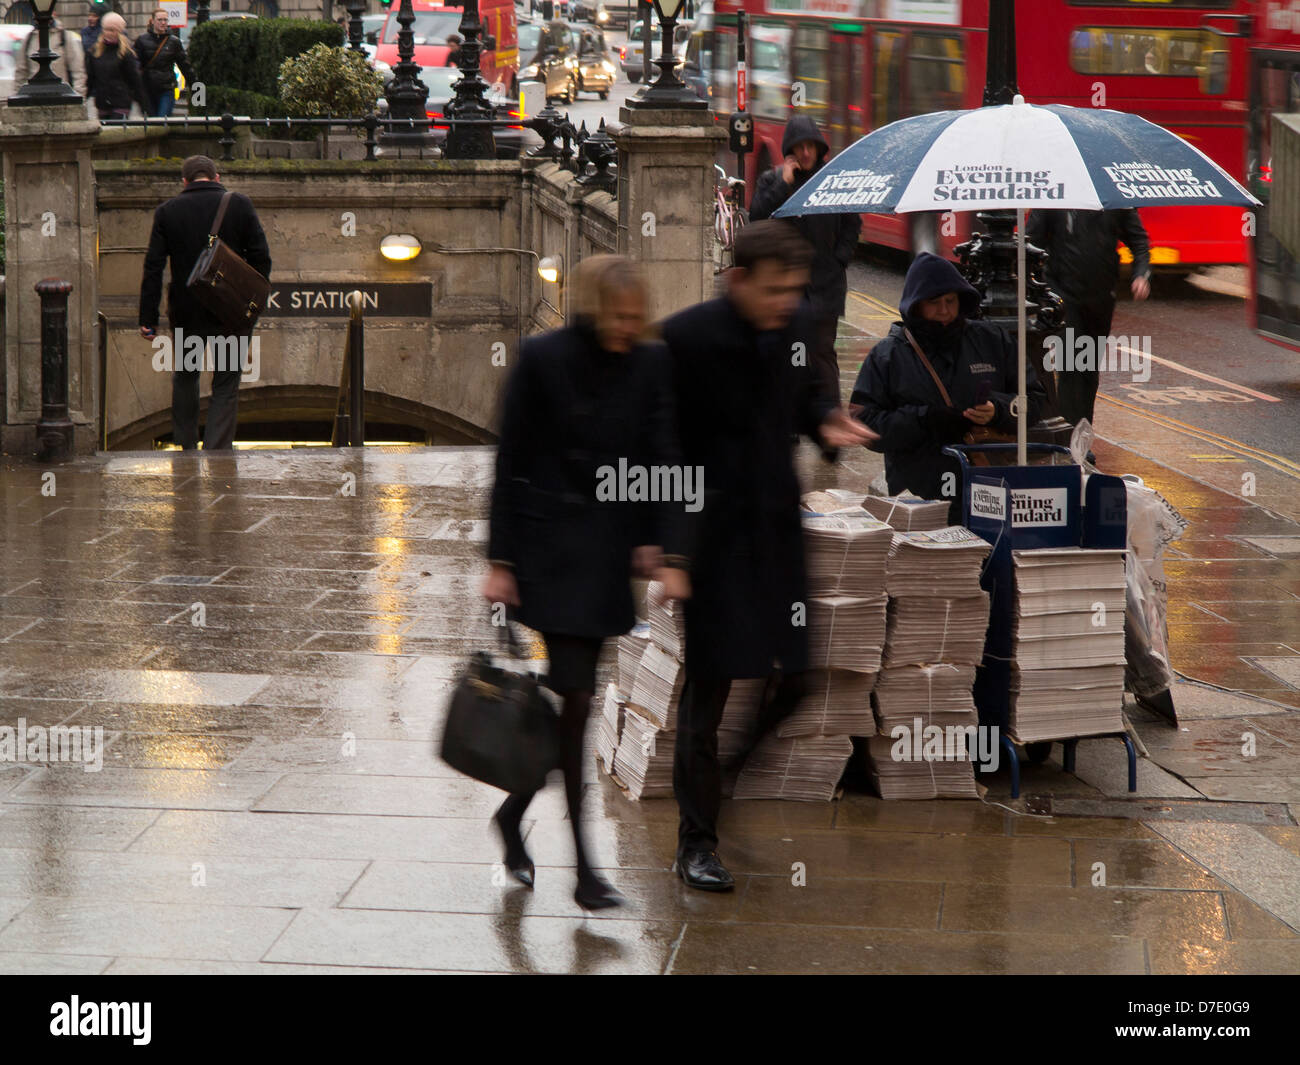 Captured with motion blur a couple hurry past a Evening Standard newspaper stand outside Bank station London. - Stock Image